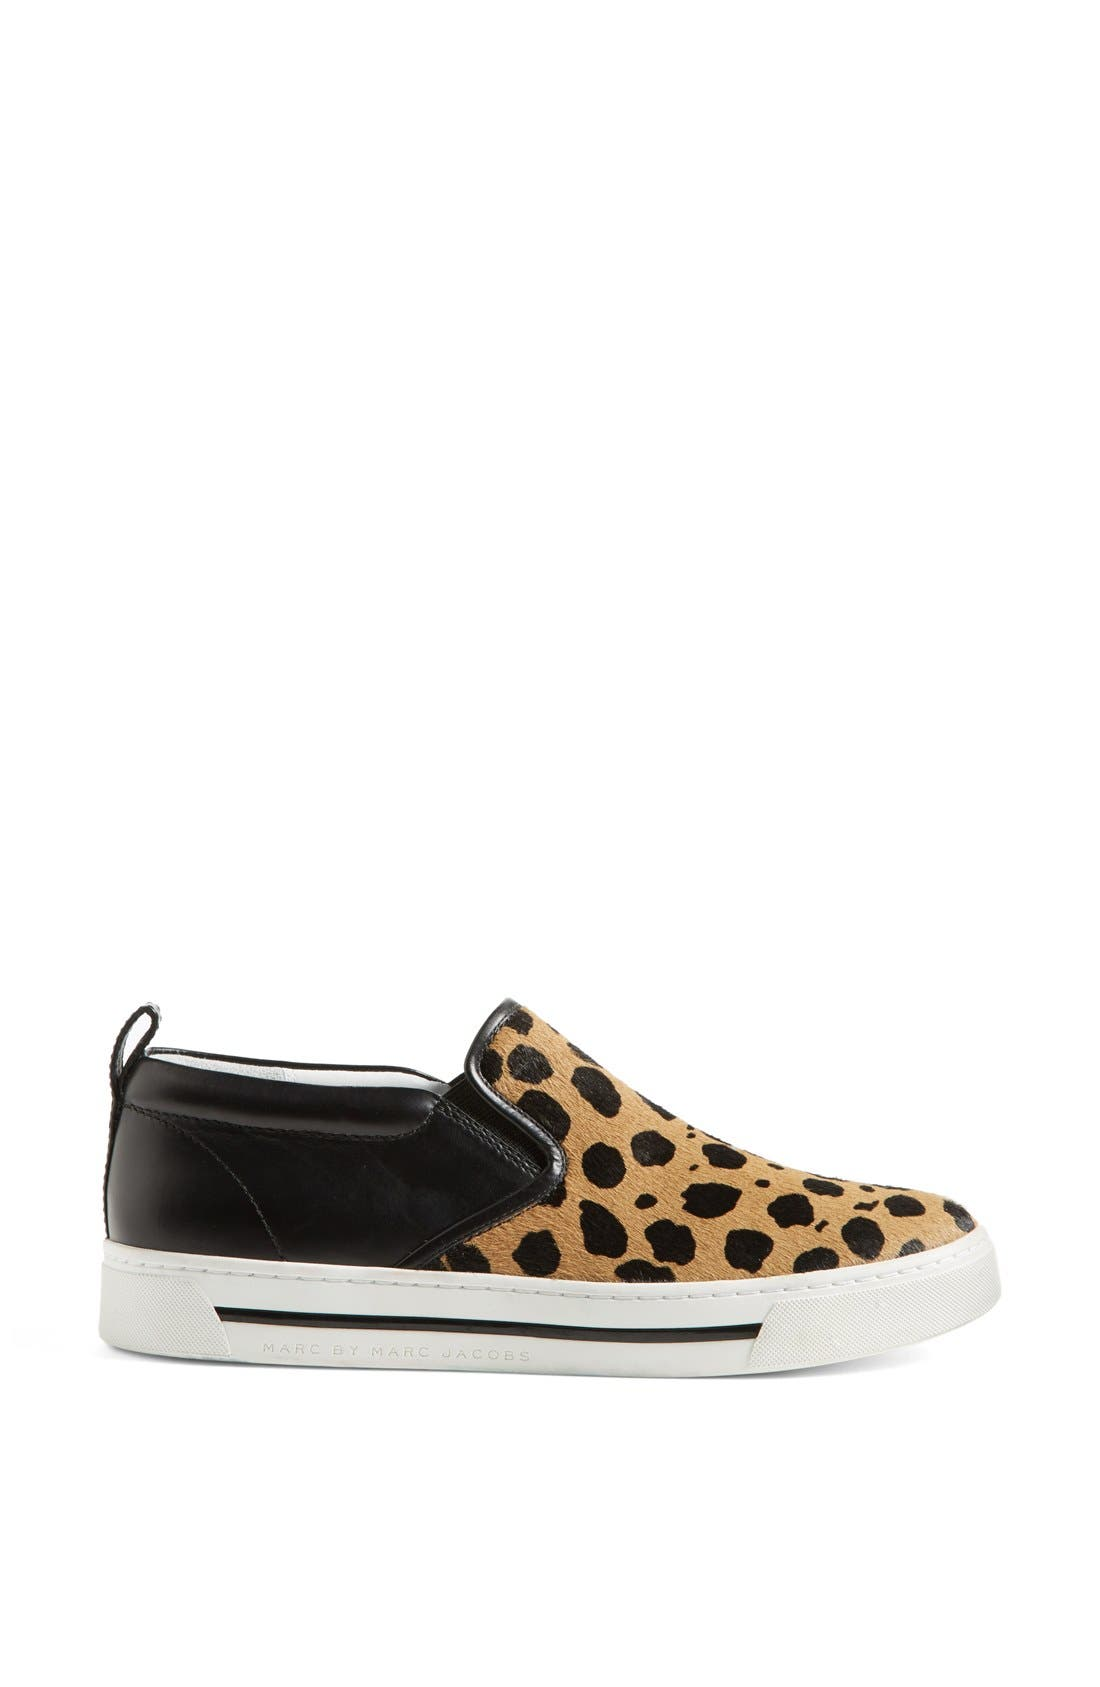 Alternate Image 4  - MARC BY MARC JACOBS Leather & Calf Hair Slip-On Sneaker